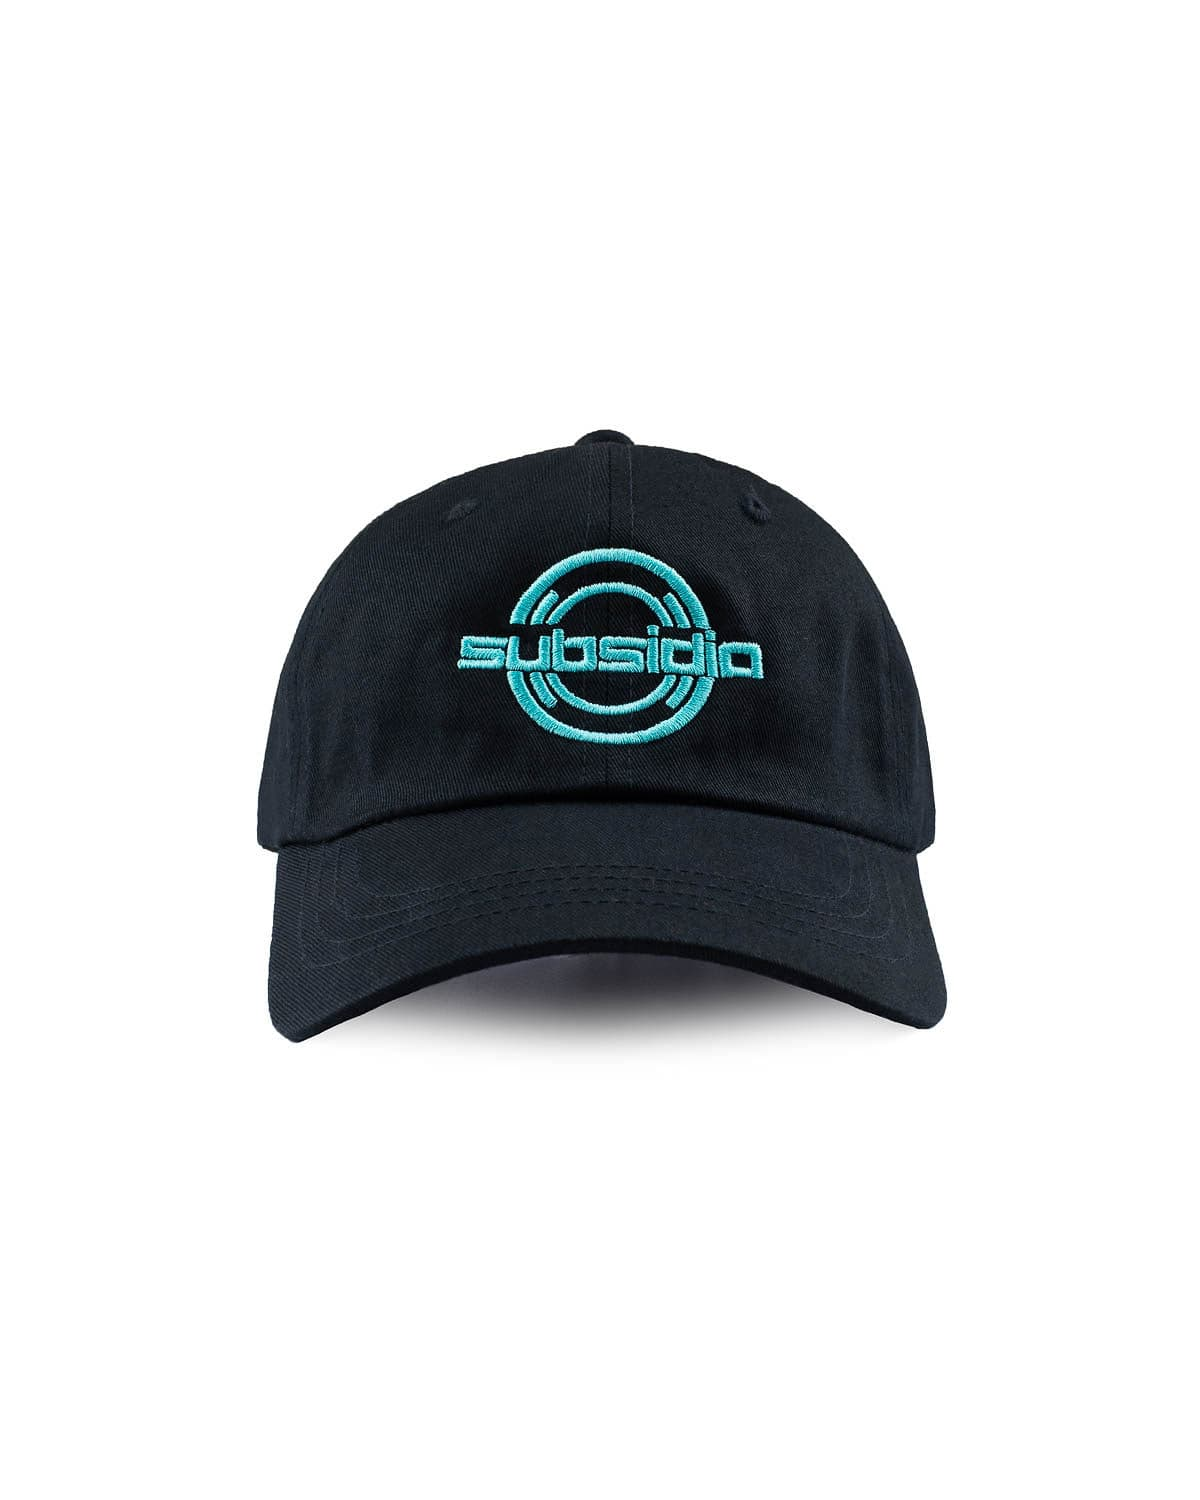 'Subsidia' Dad Hat - Black/Teal